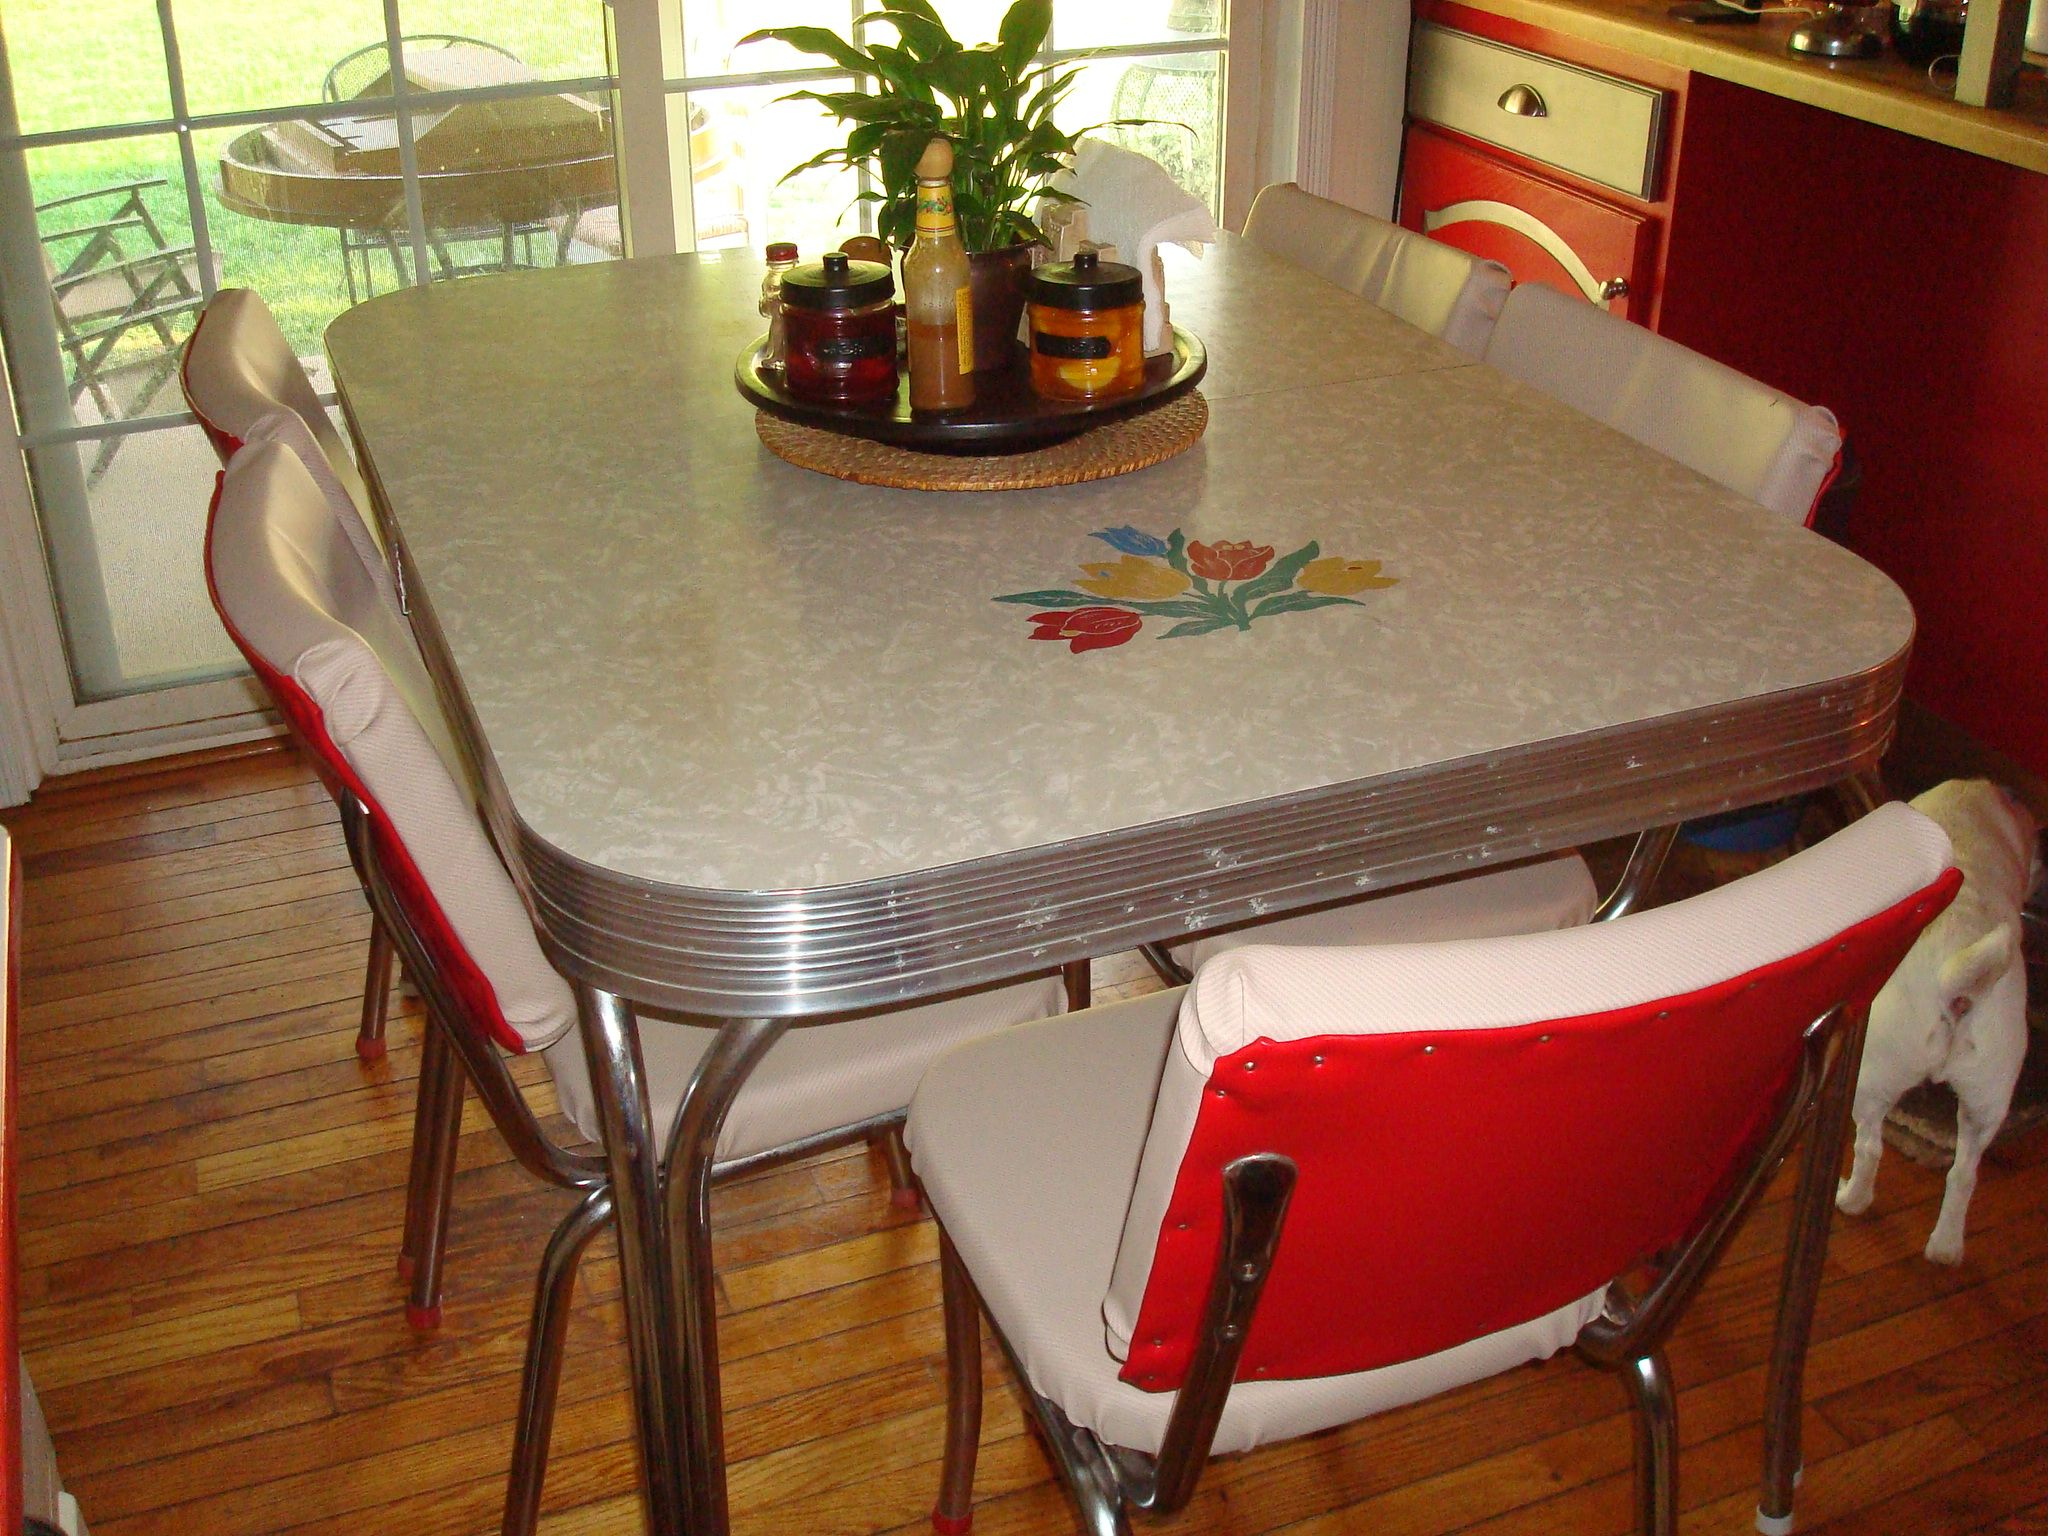 Retro kitchen table recuerdos pinterest for The kitchen table